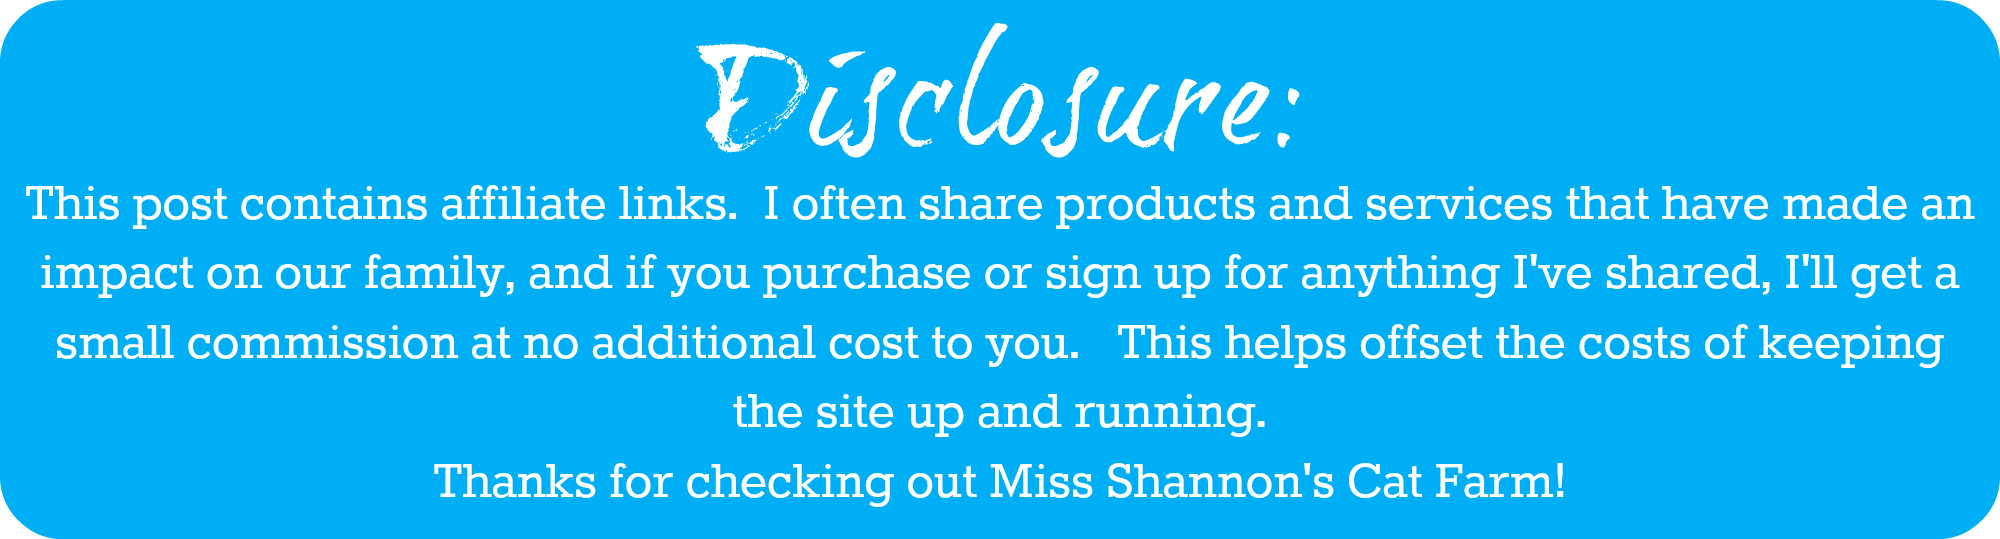 This post contains affiliate links.  I often share products and services that have made an impact on our family, and if you purchase or sign up for something I share, I receive a small commission. This helps offset the cost of keeping this site up and running.  Thanks for checking out Miss Shannon's Cat Farm!